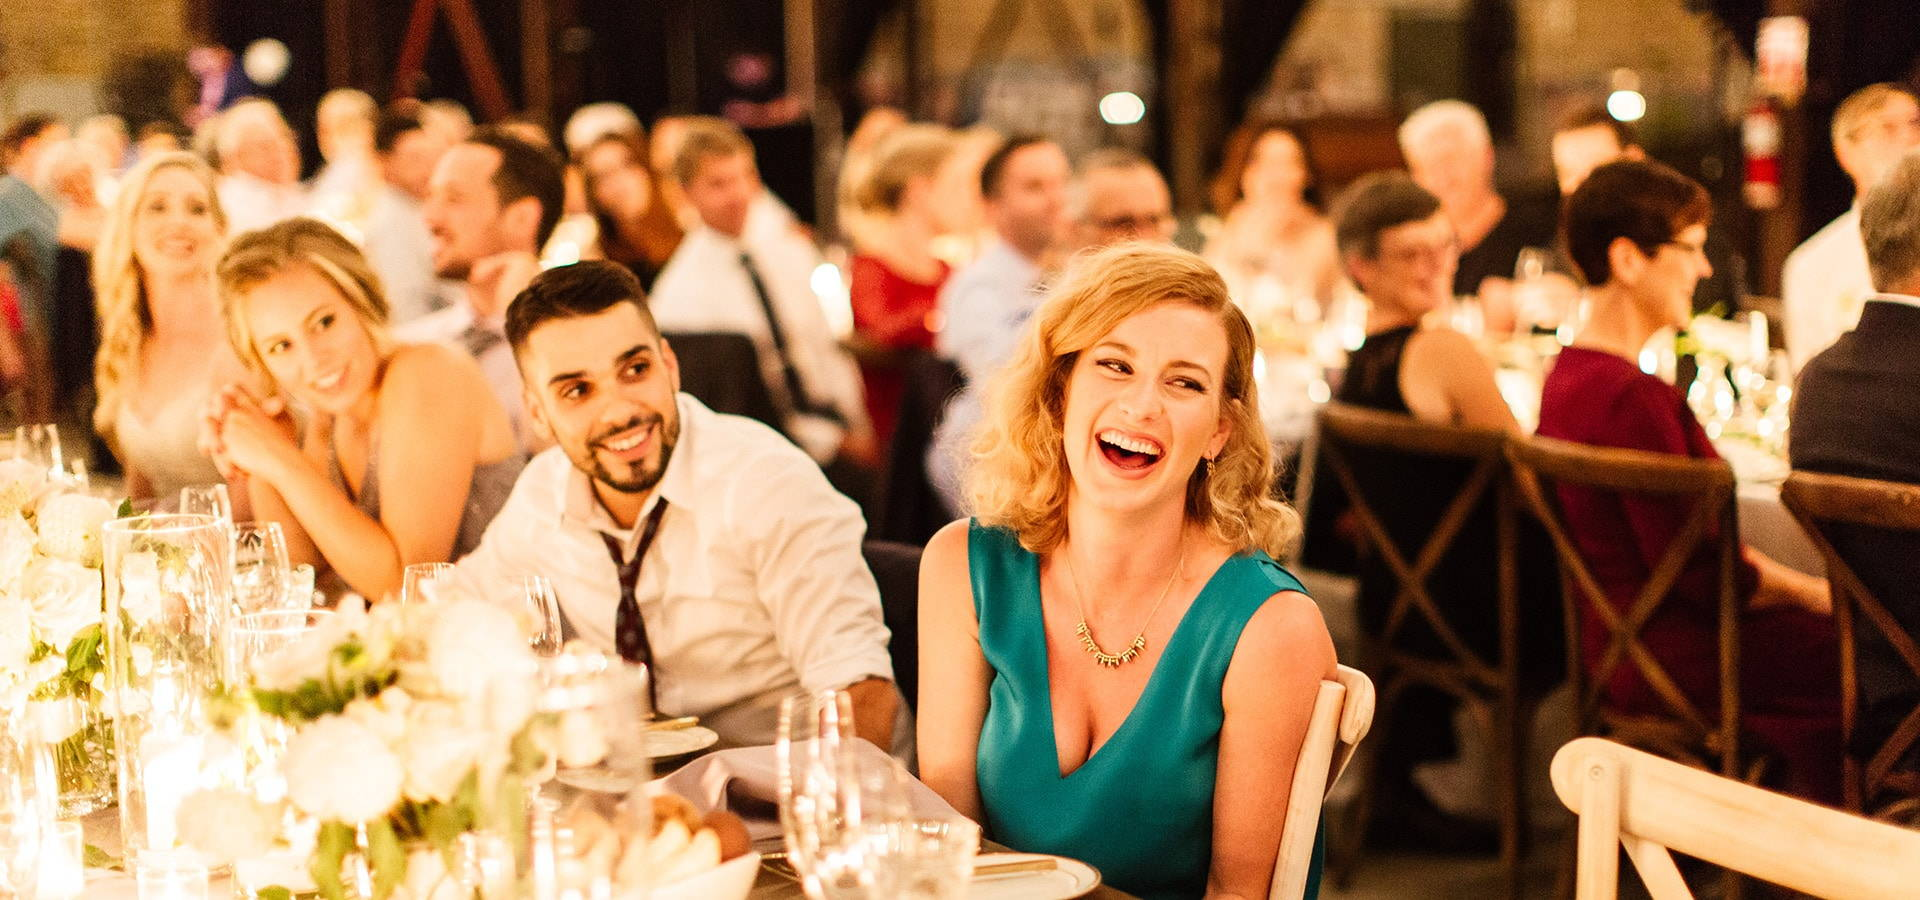 Hero image for 6 Fool Proof Ways to Seat Your Wedding Guests